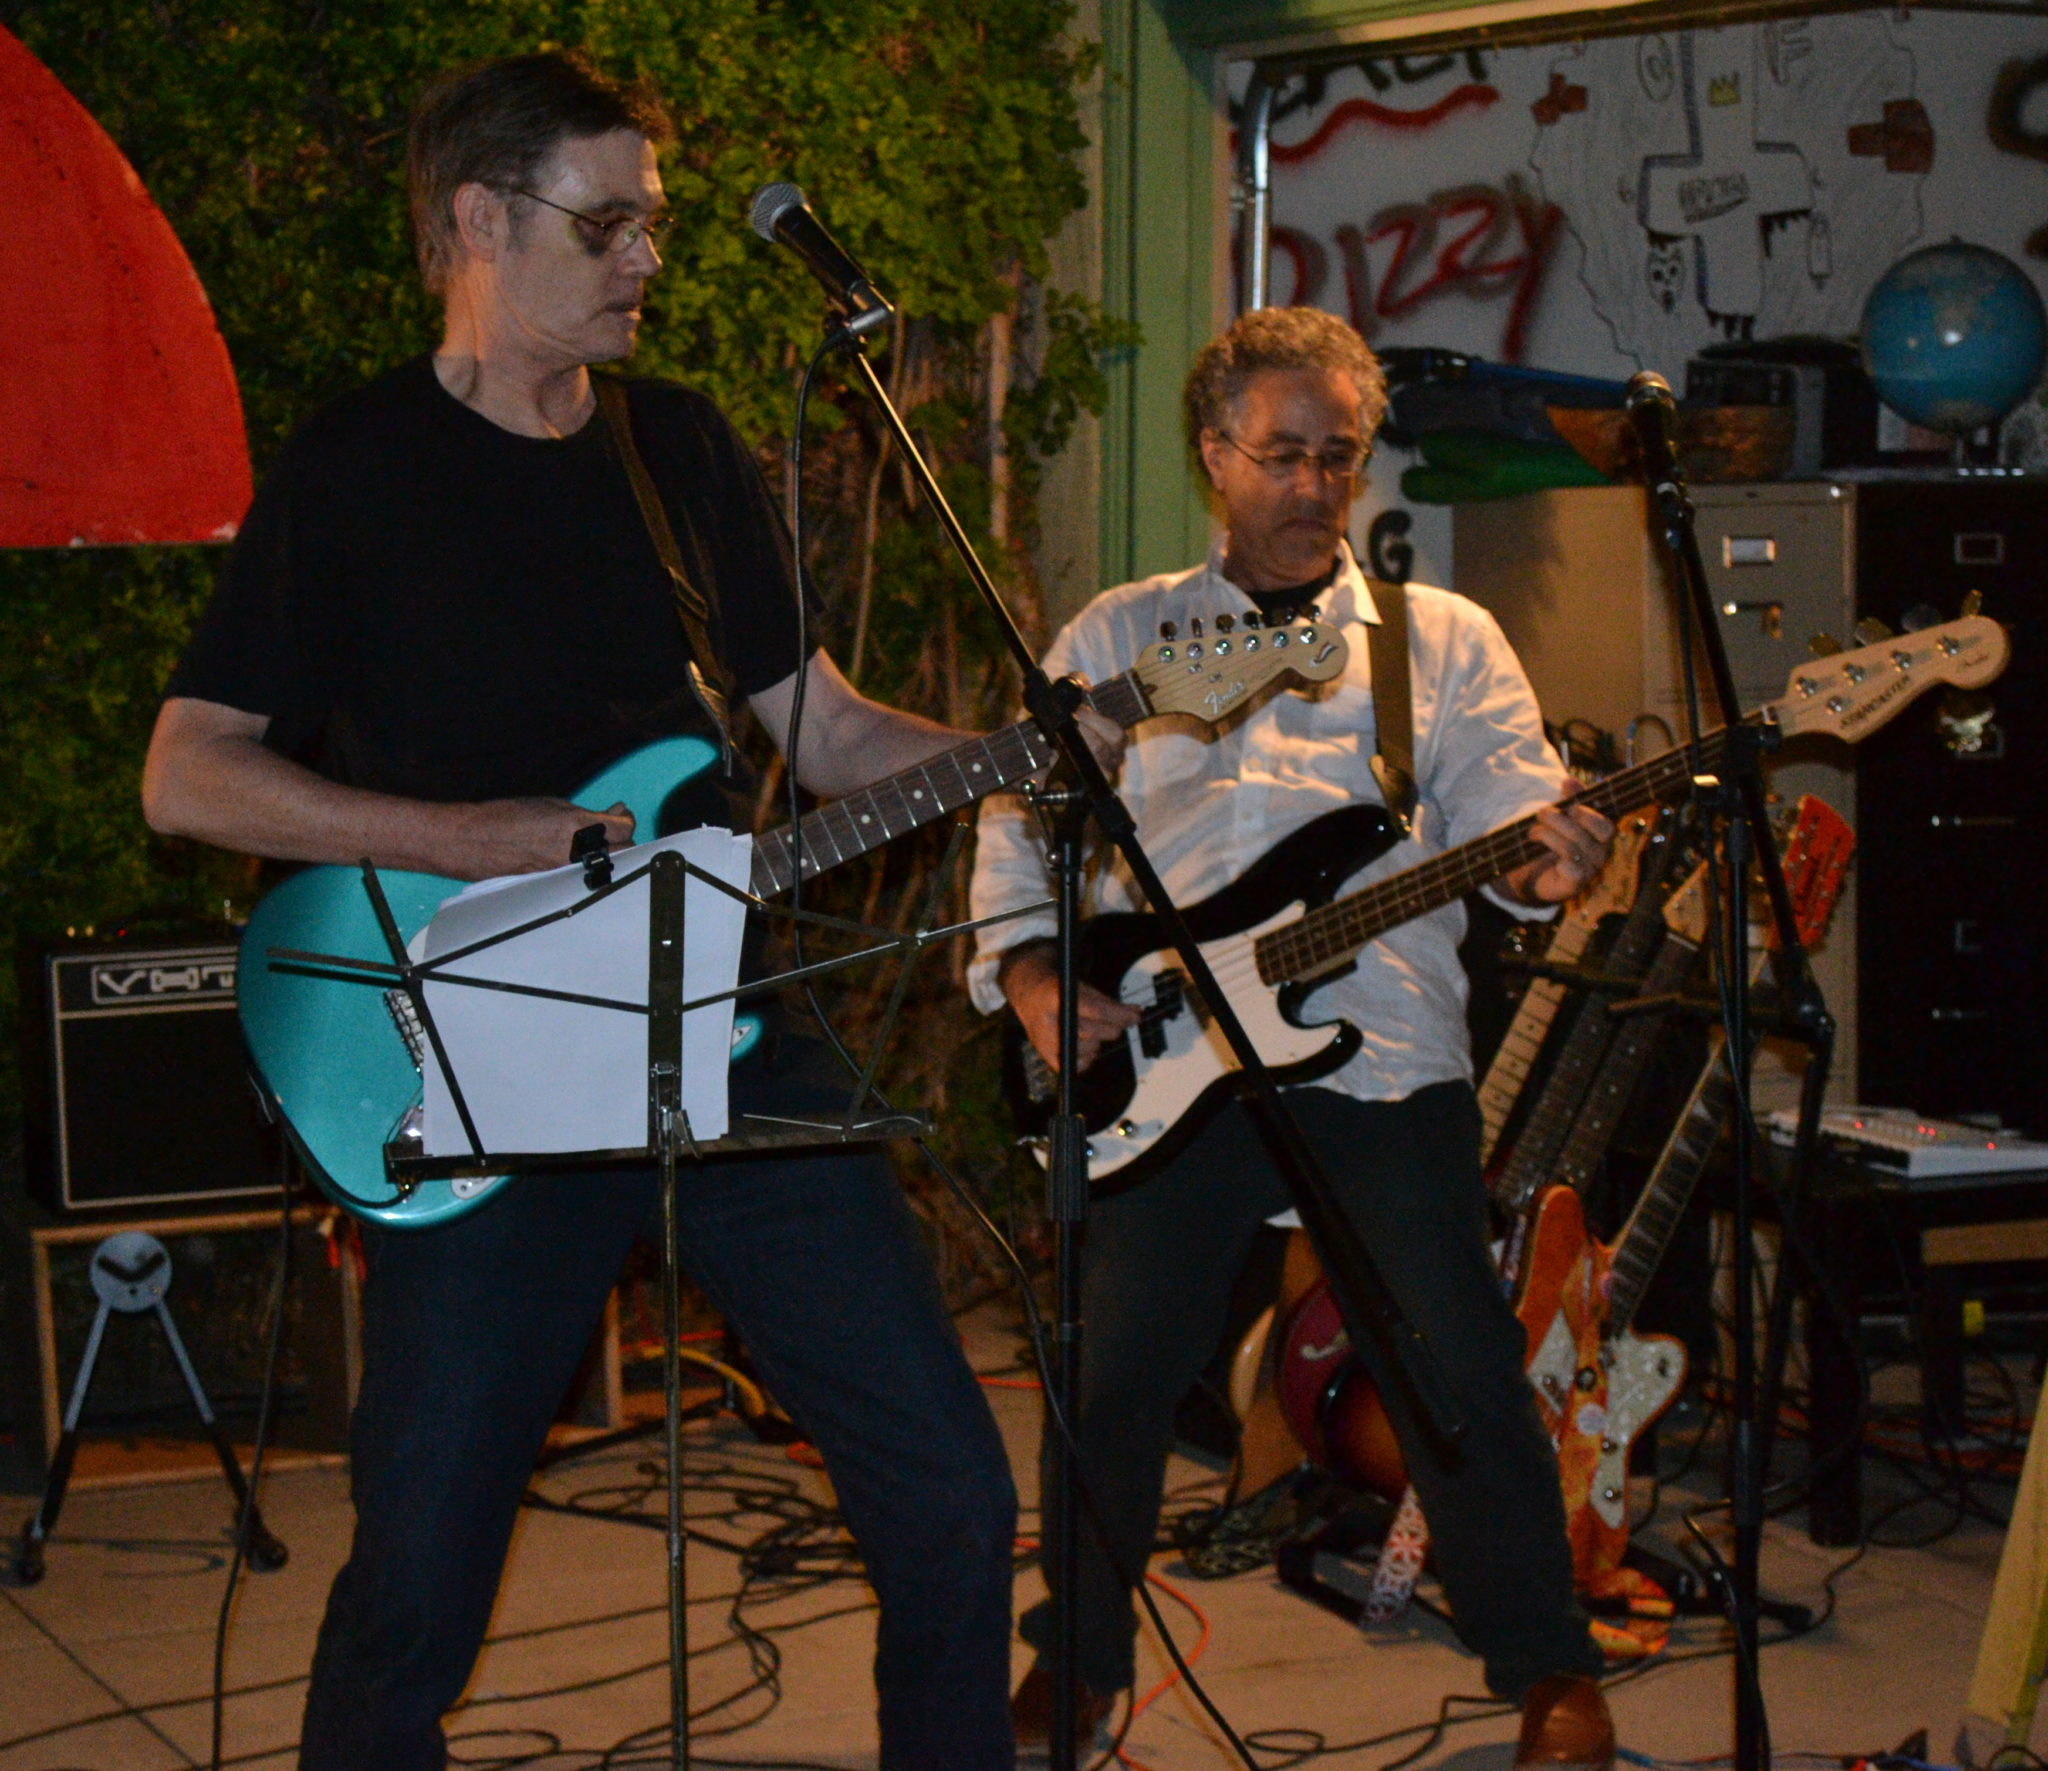 The Innocent Bystanders Play Live Music At A Backyard Party In San Diego